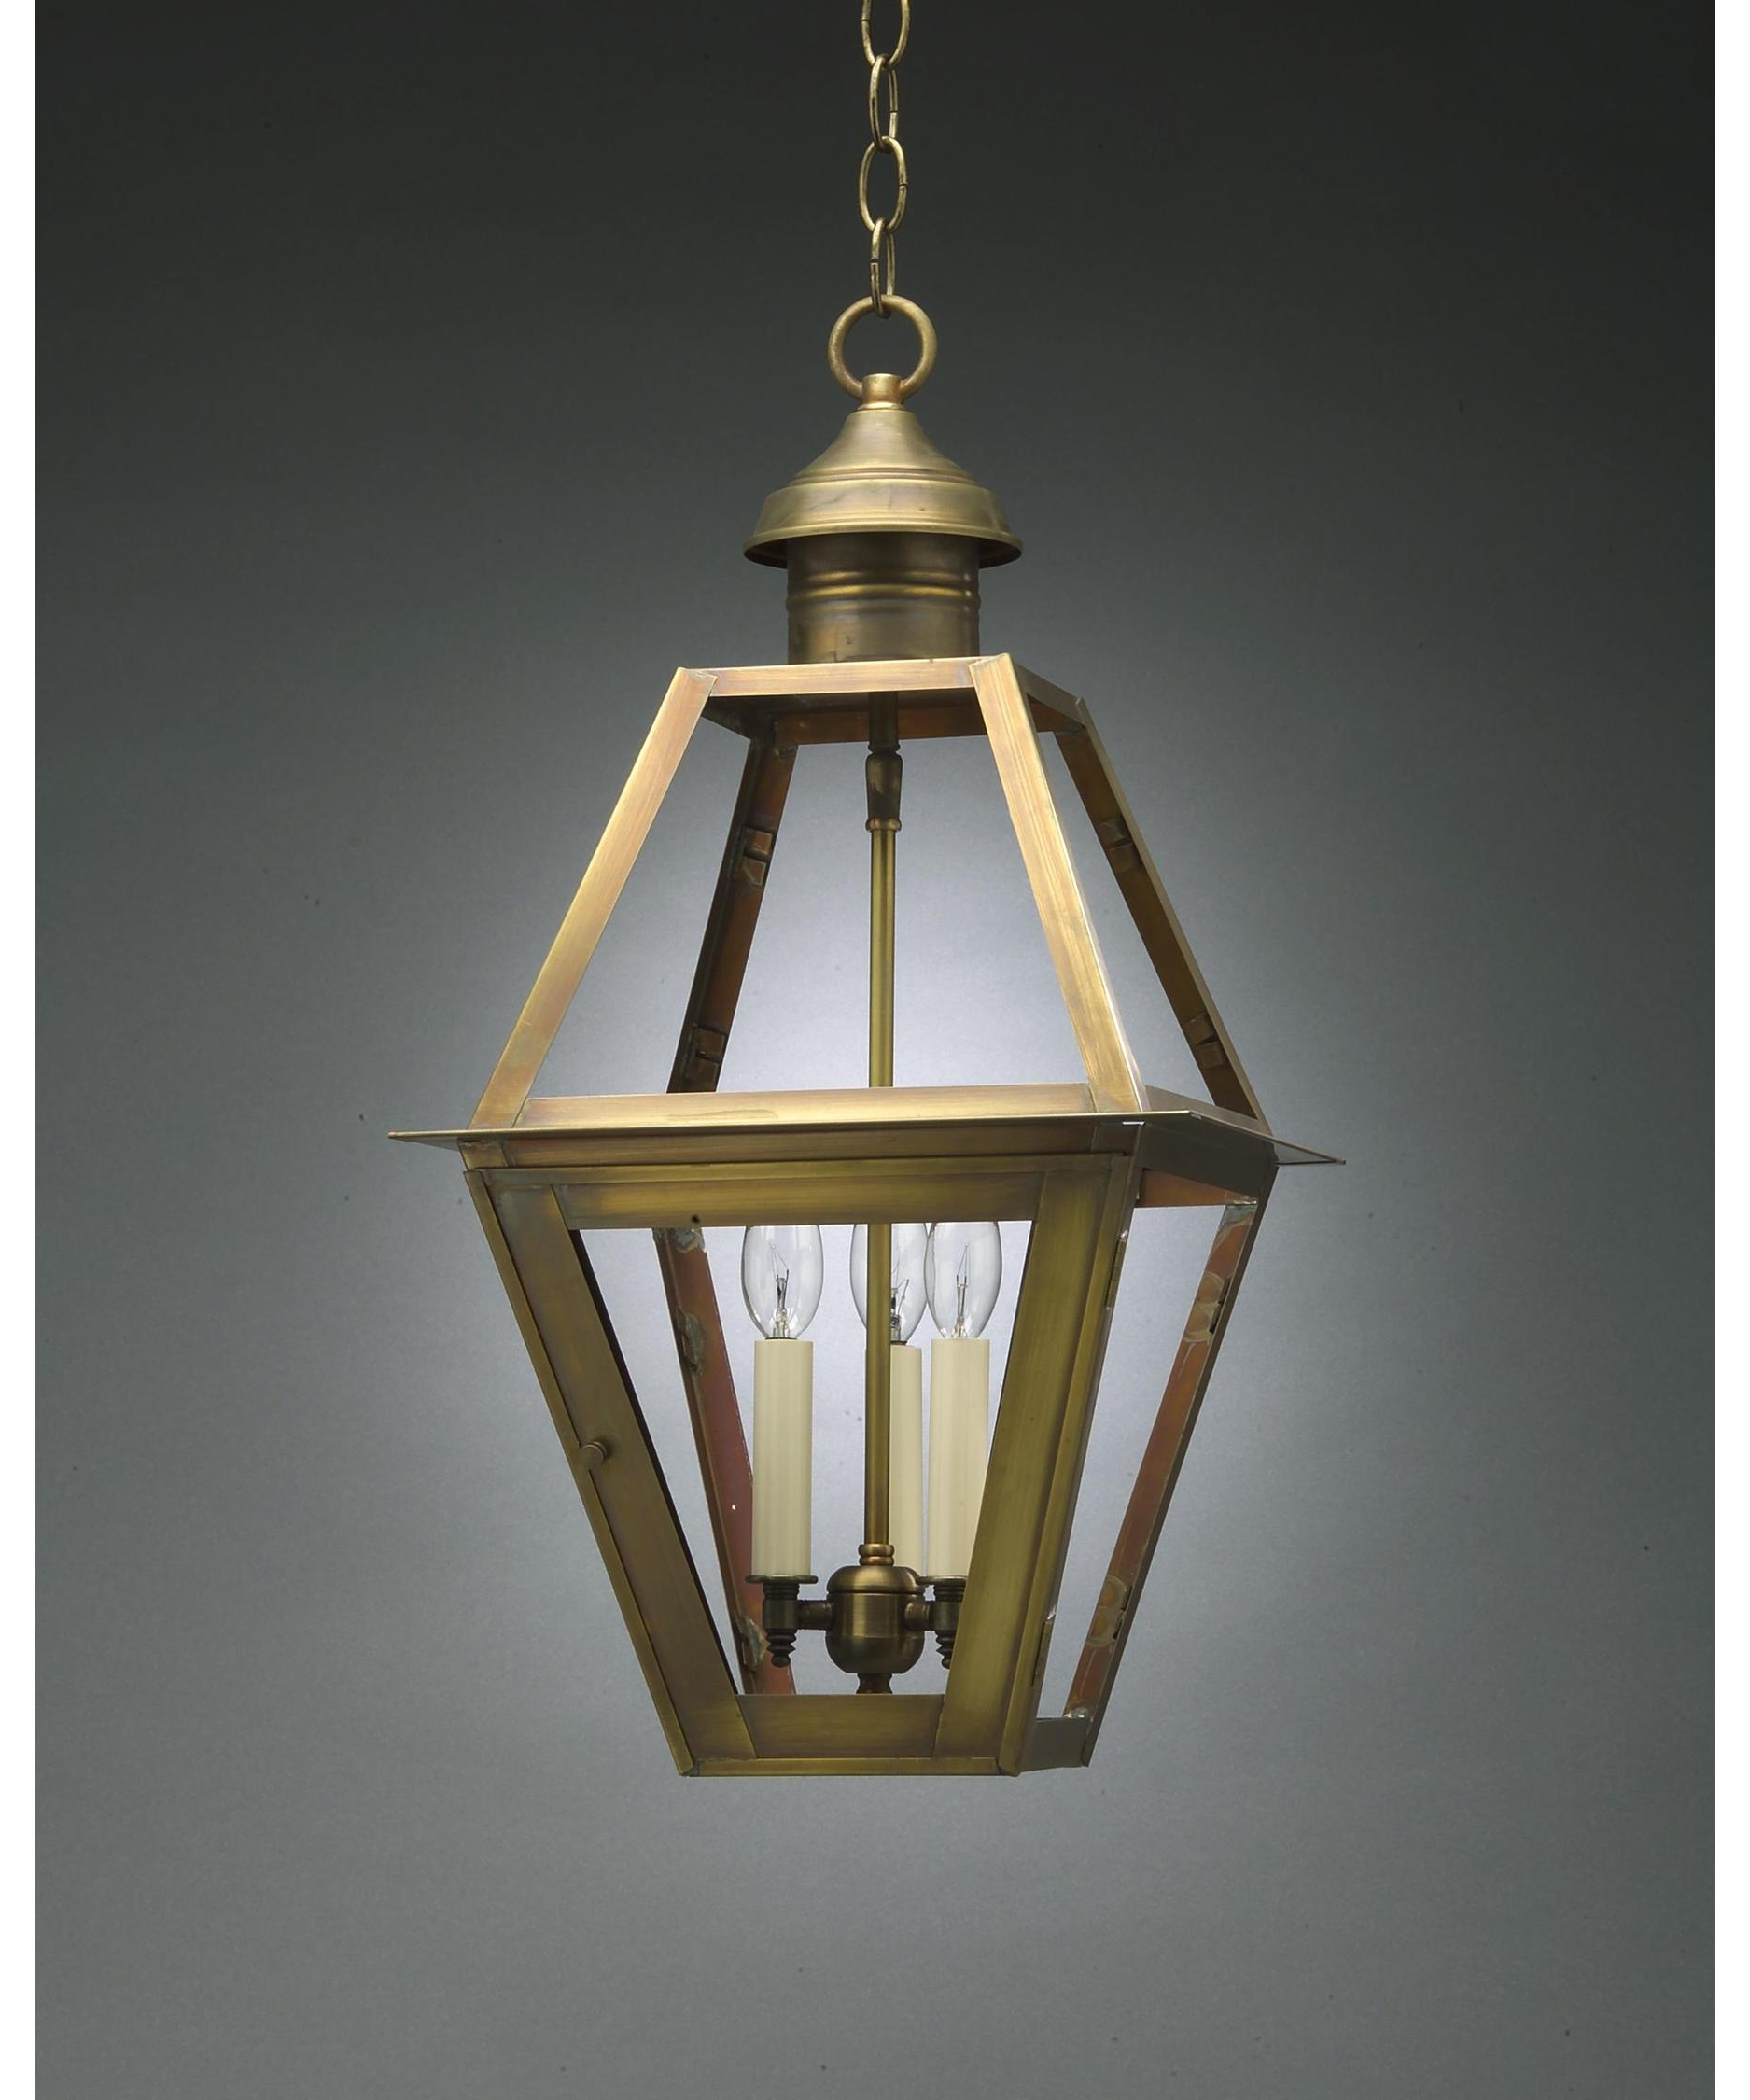 Outdoor Pendant Lanterns Within Preferred Northeast Lantern 1012 Lt3 Boston 12 Inch Wide 3 Light Outdoor (View 14 of 20)